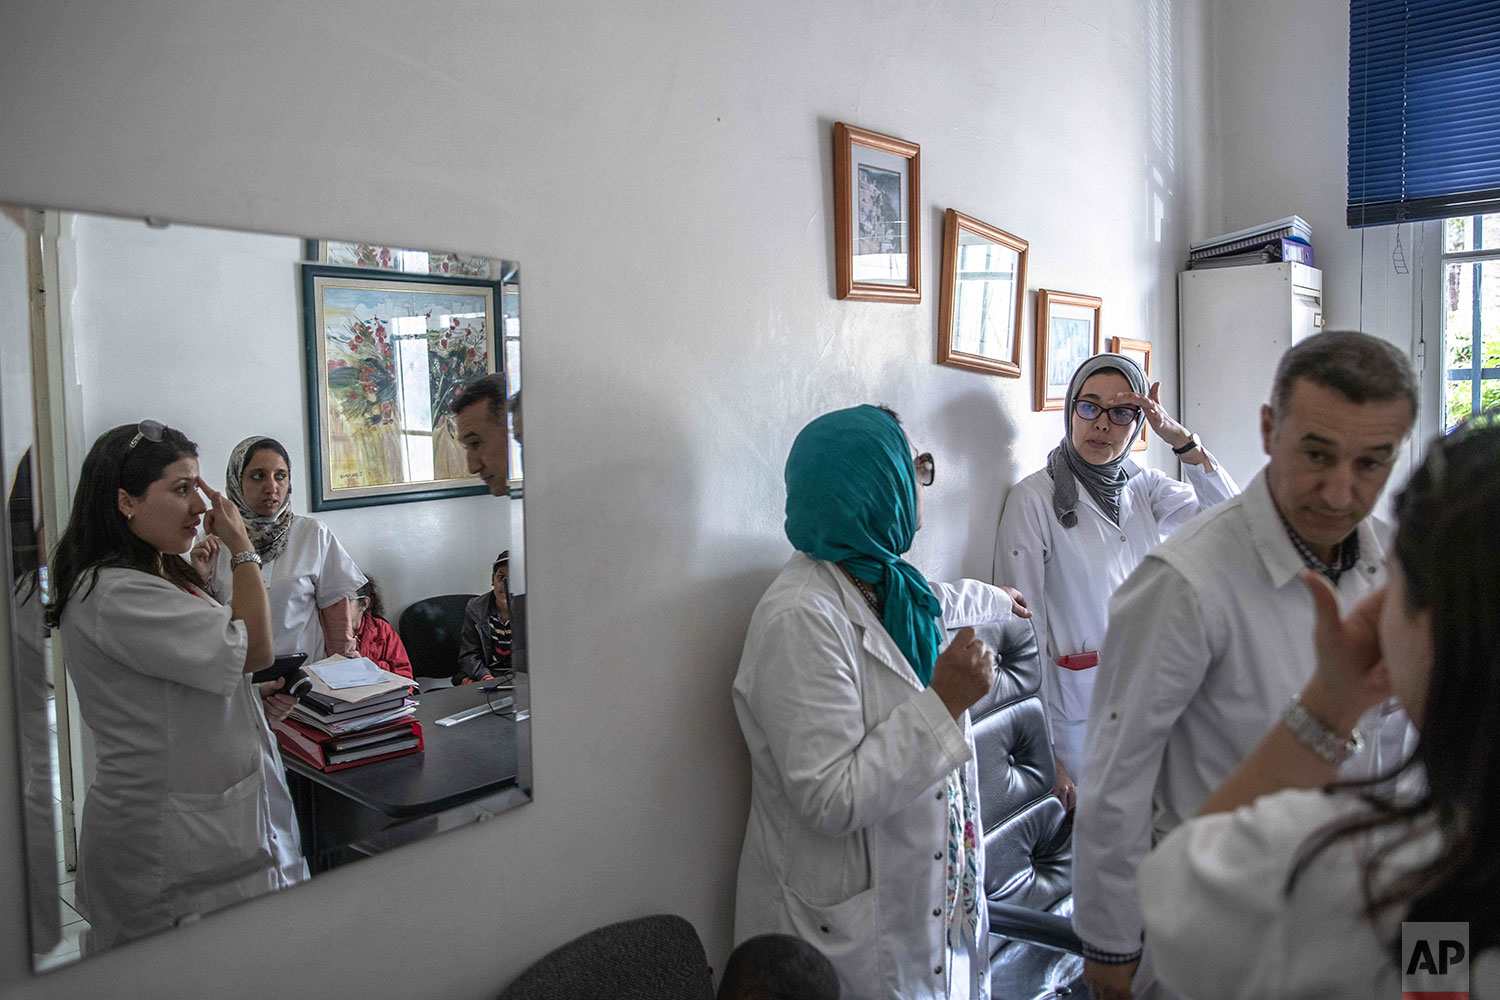 In this Wednesday, July 24, 2019 photo, dermatologists gather information on children affected by a rare disorder called xeroderma pigmentosum, or XP, inside a hospital in Casablanca, Morocco. (AP Photo/Mosa'ab Elshamy)